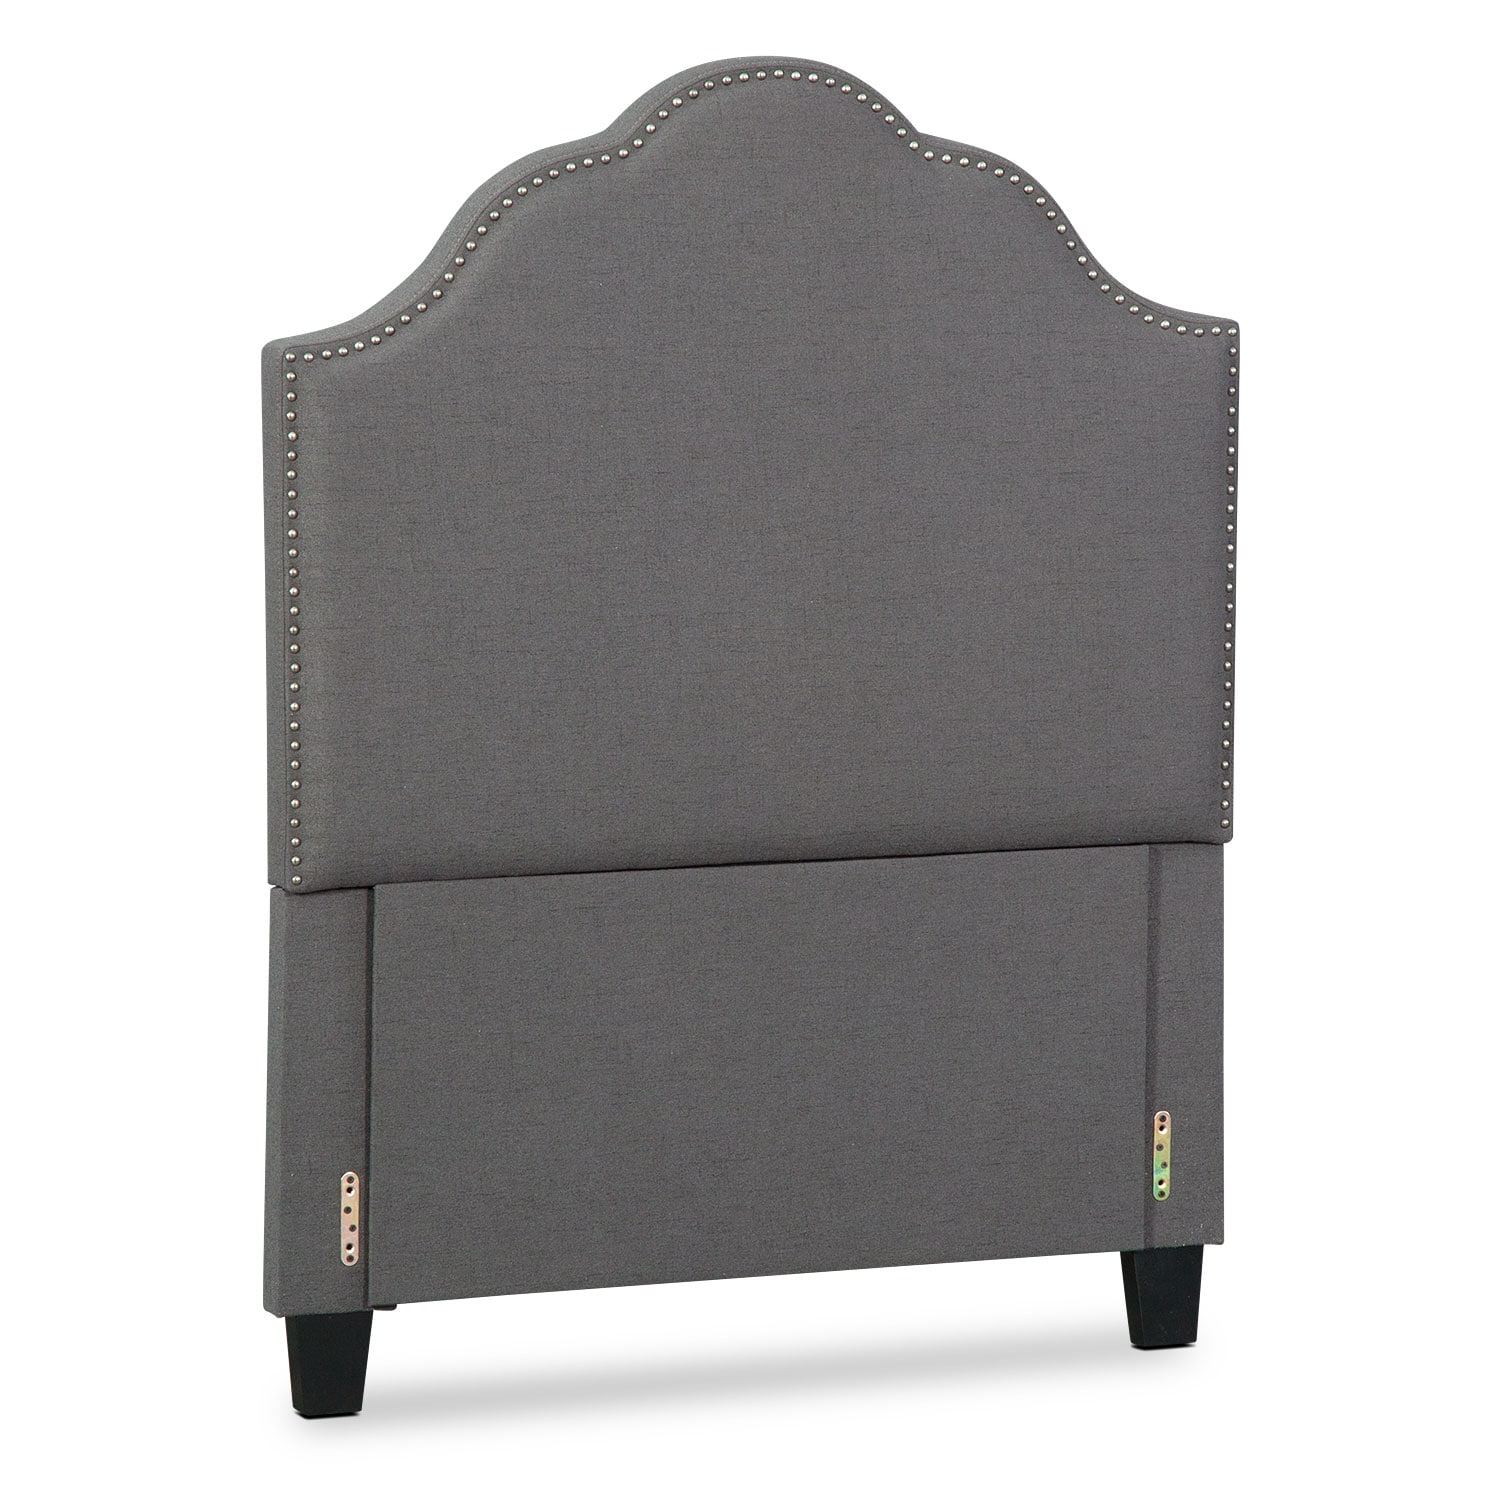 Bedroom Furniture - Maya Full Upholstered Headboard - Gray